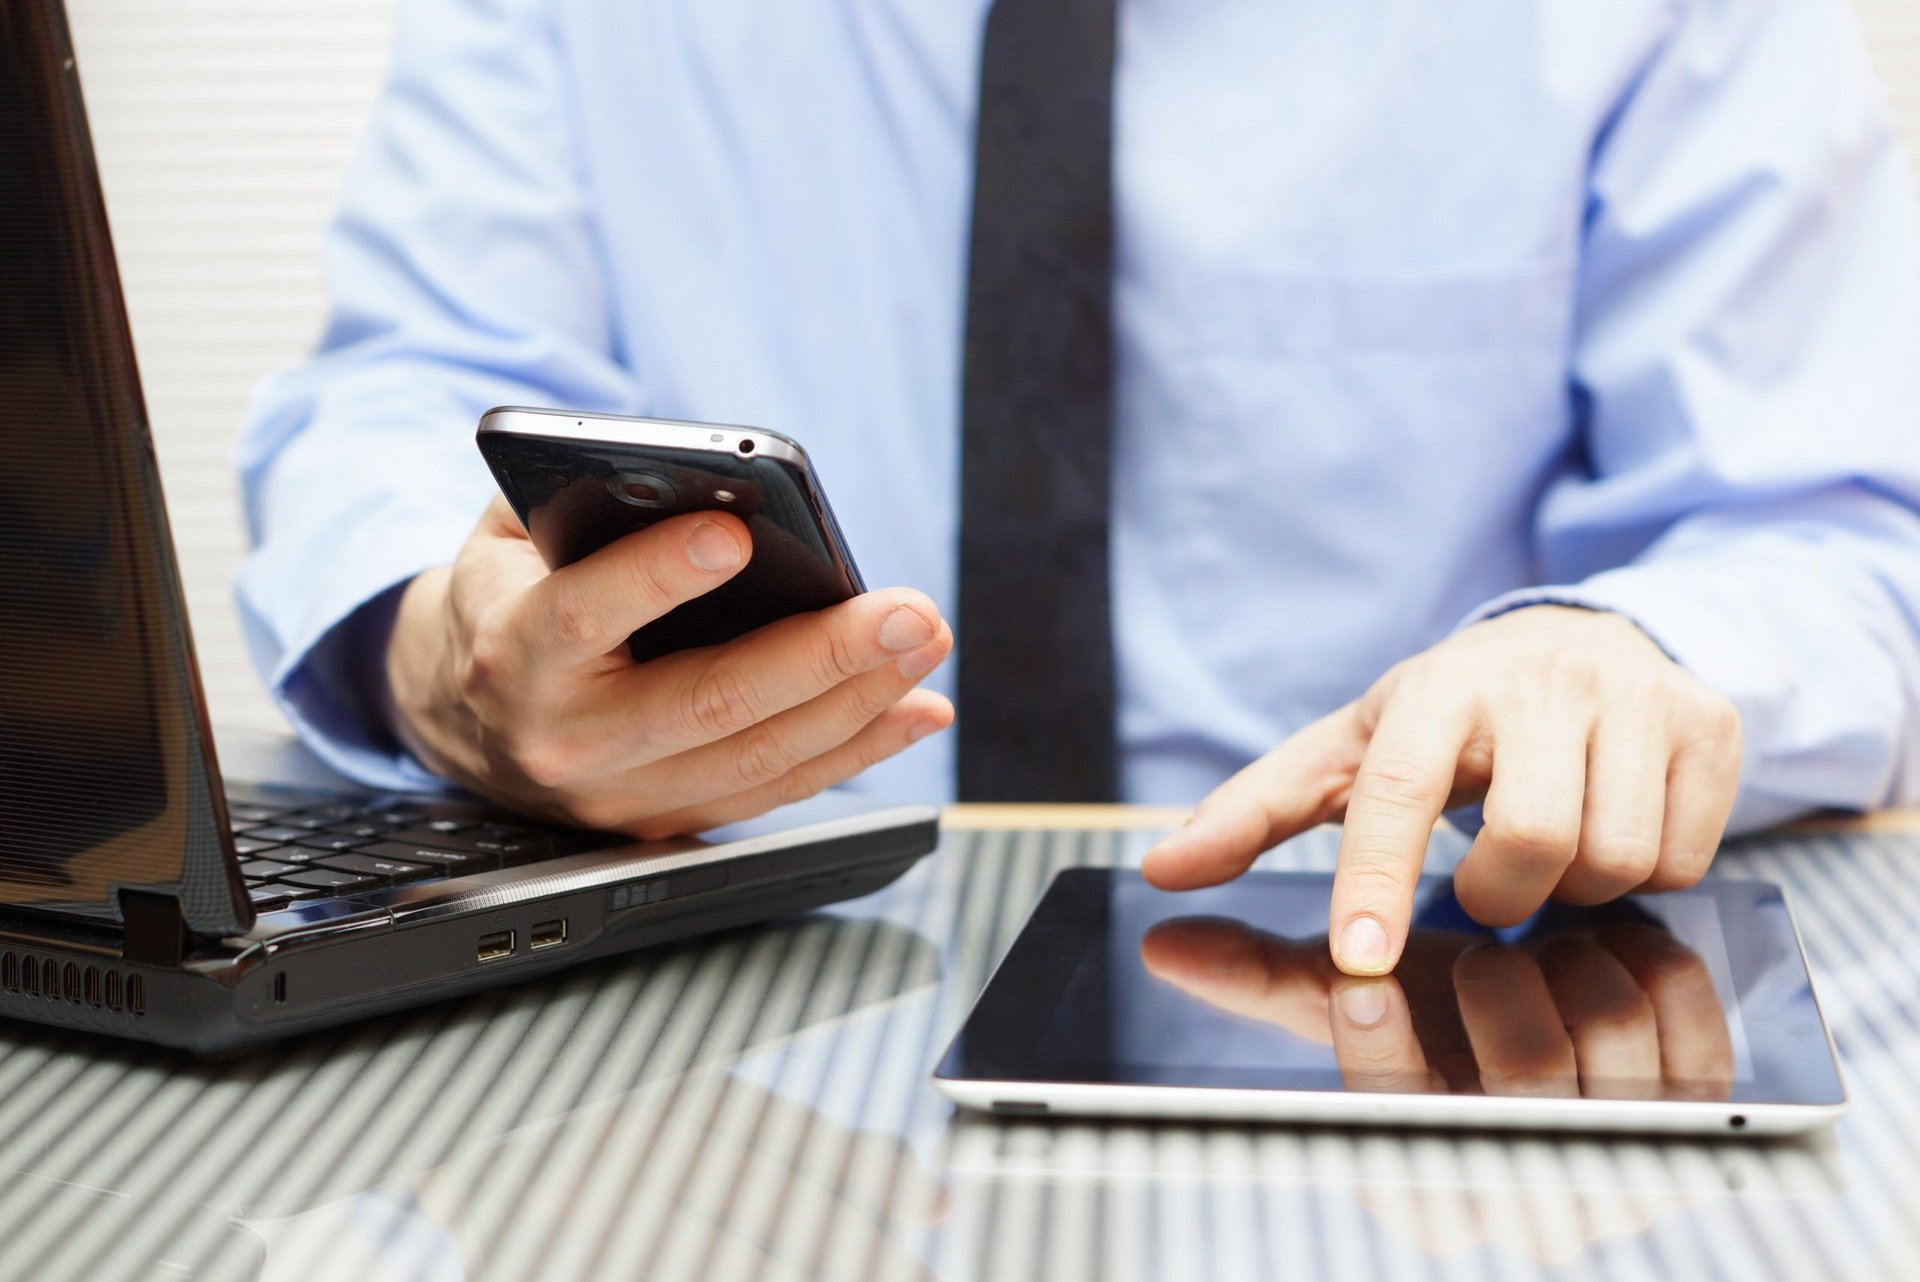 Man using too much data on his phone, tablet and laptop